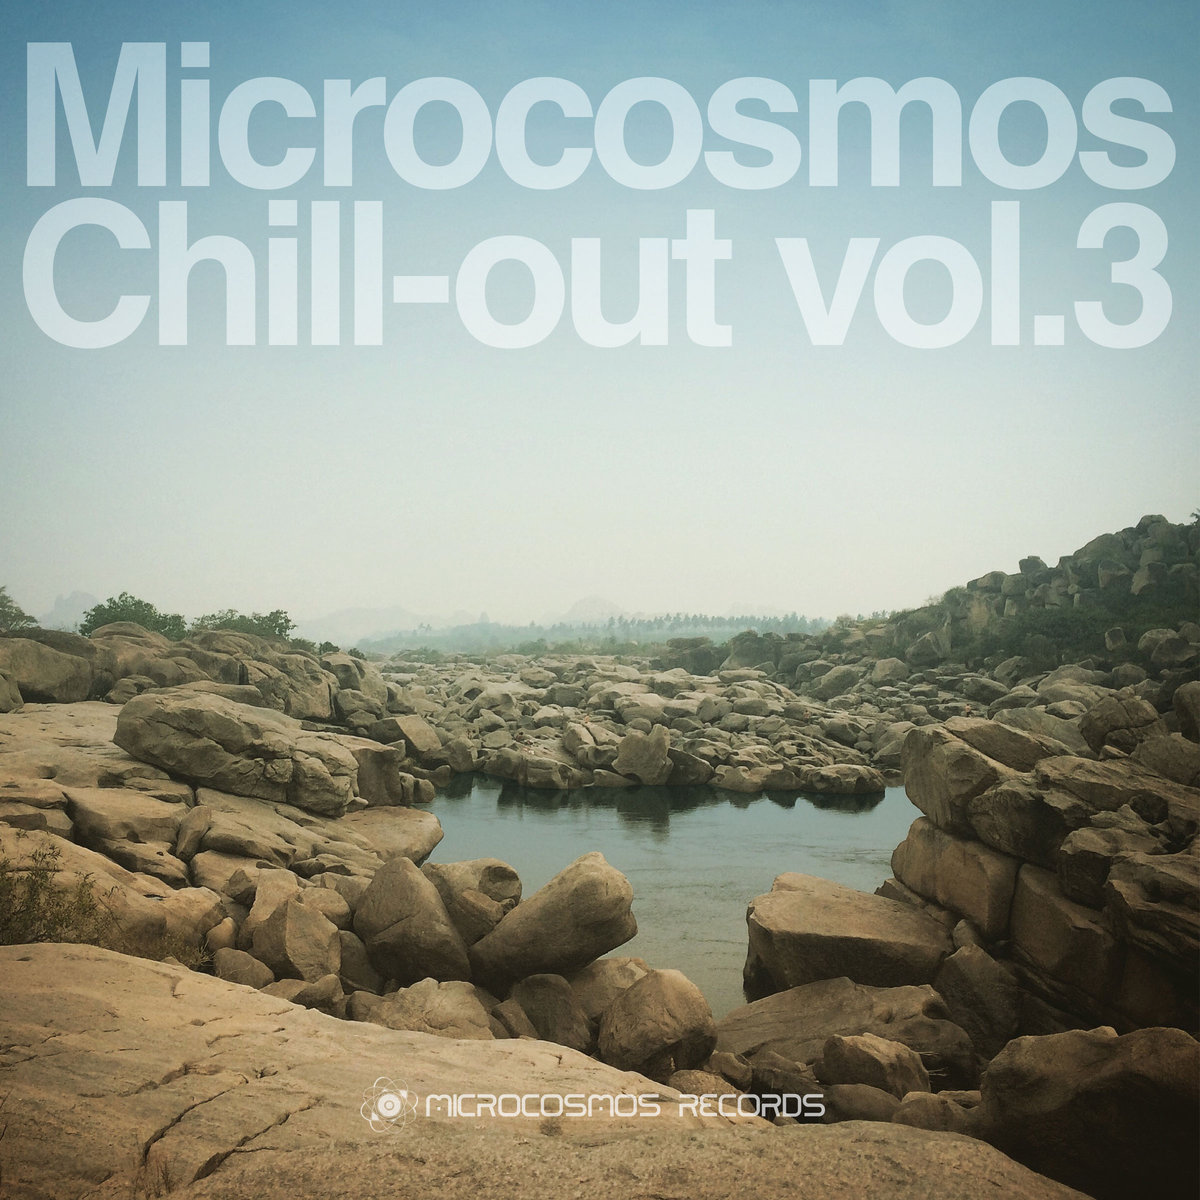 Cubering - Flashback @ 'Microcosmos Chill-out Vol.3' album (ambient, chill-out)